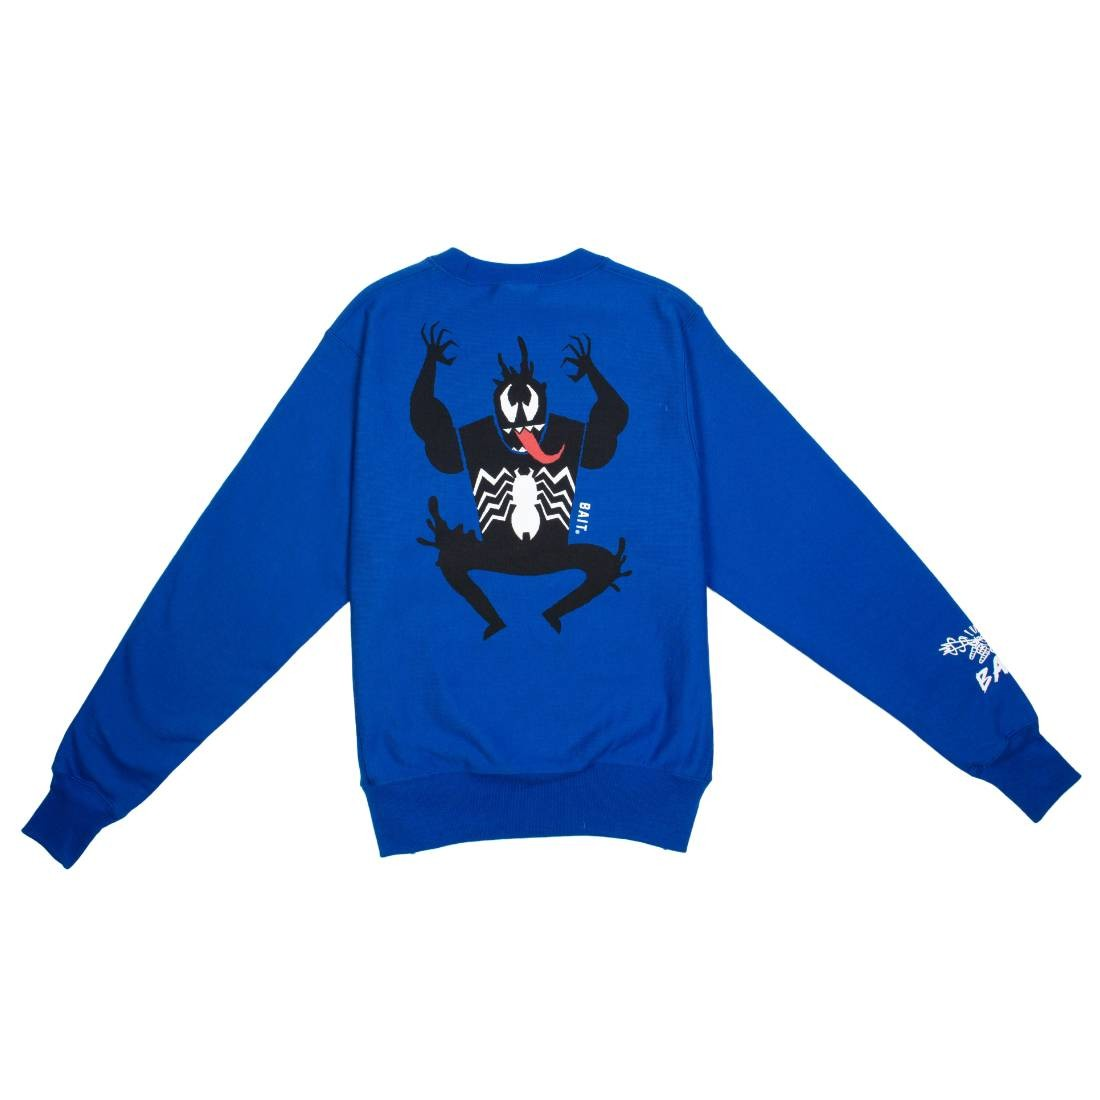 BAIT x Spiderman x Champion Men Spiderman Villains Crewneck Sweater (blue / surf the web)